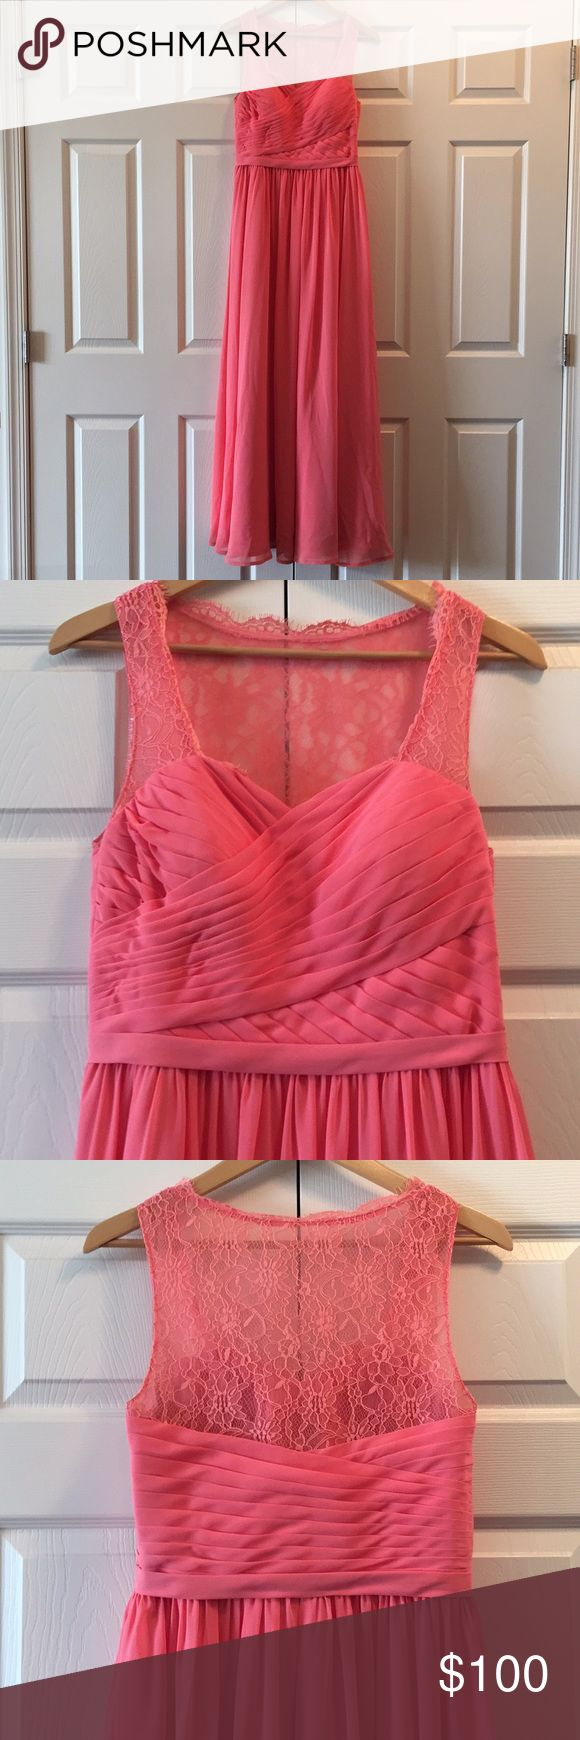 """Azazie Bridesmaid/Formal Dress Coral Azazie Bridesmaid/Formal Dress, in great condition. Top is sweetheart neckline with lace straps and back, zipper down the side. Wore once this summer for a wedding and had dry-cleaned. May still be a couple spots on the bottom because it was a little long, however hardly noticeable. I did have it hemmed and taken in. Length total is ~59"""". Top part to skirt is ~16"""", skirt to floor is ~43. Width across bust is 16.5"""", across waist is 14"""". Comes with matching…"""